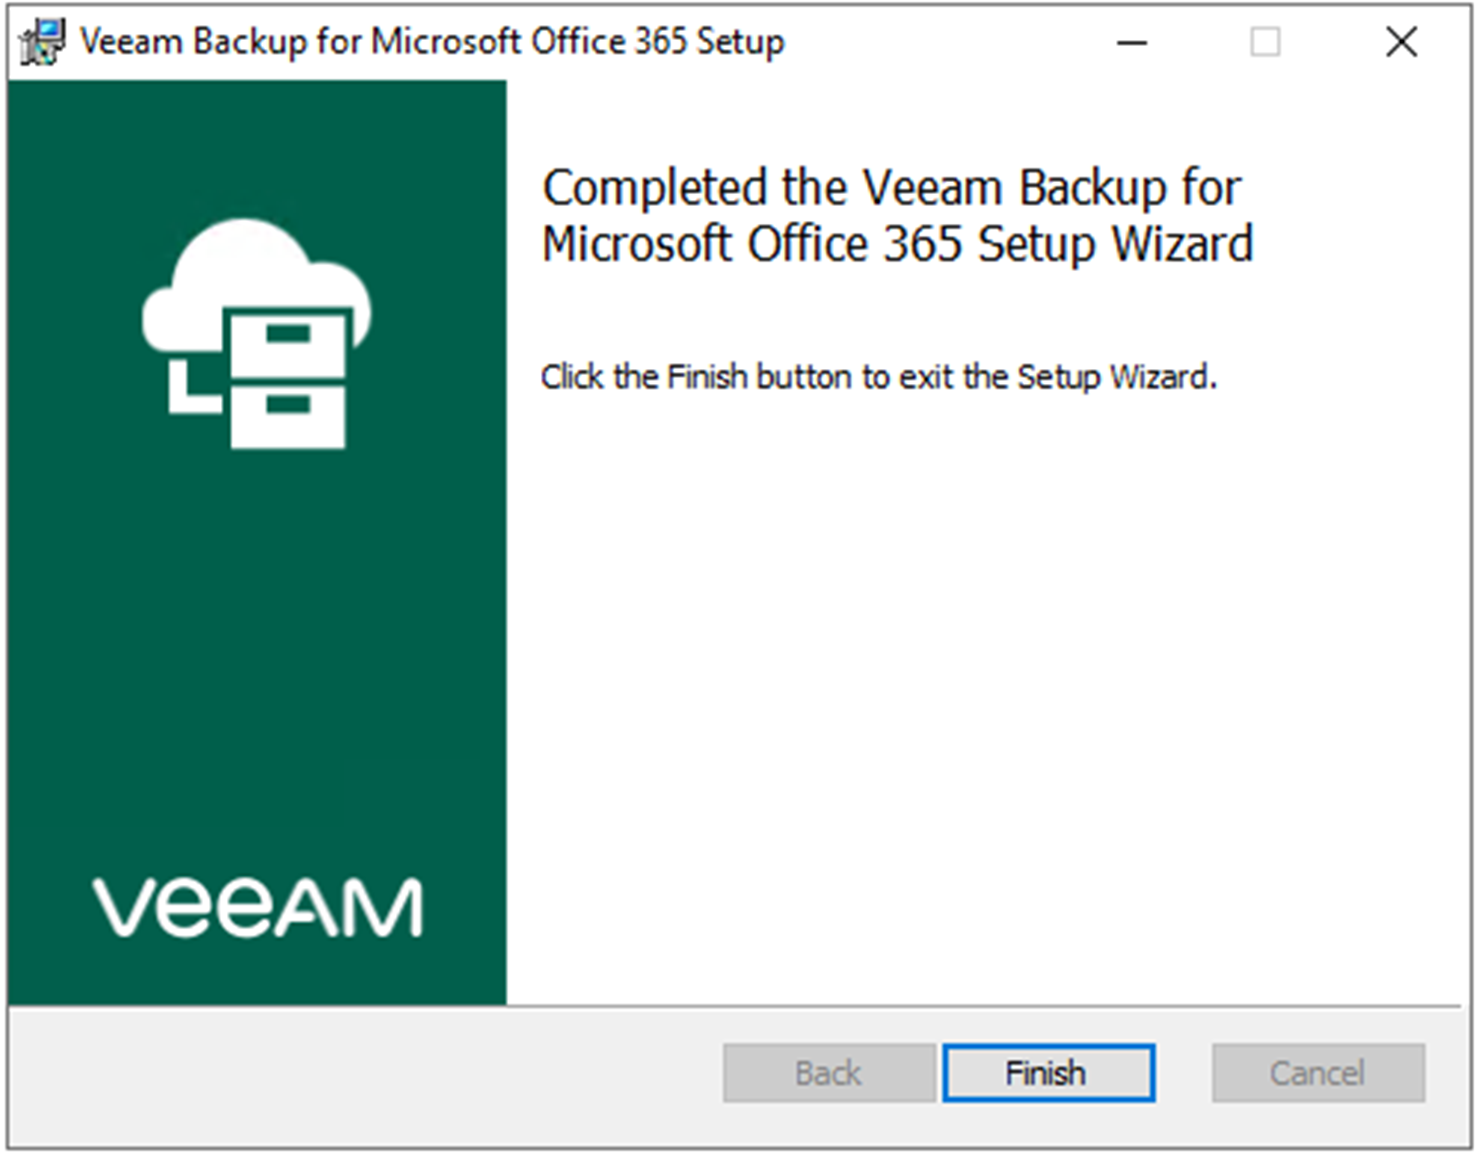 100320 2346 HowtoUpgrad14 - How to Upgrade Veeam Backup for Microsoft Office 365 to V4c Day 0 Update #Veeam #Office365 #Backup #Mvphour